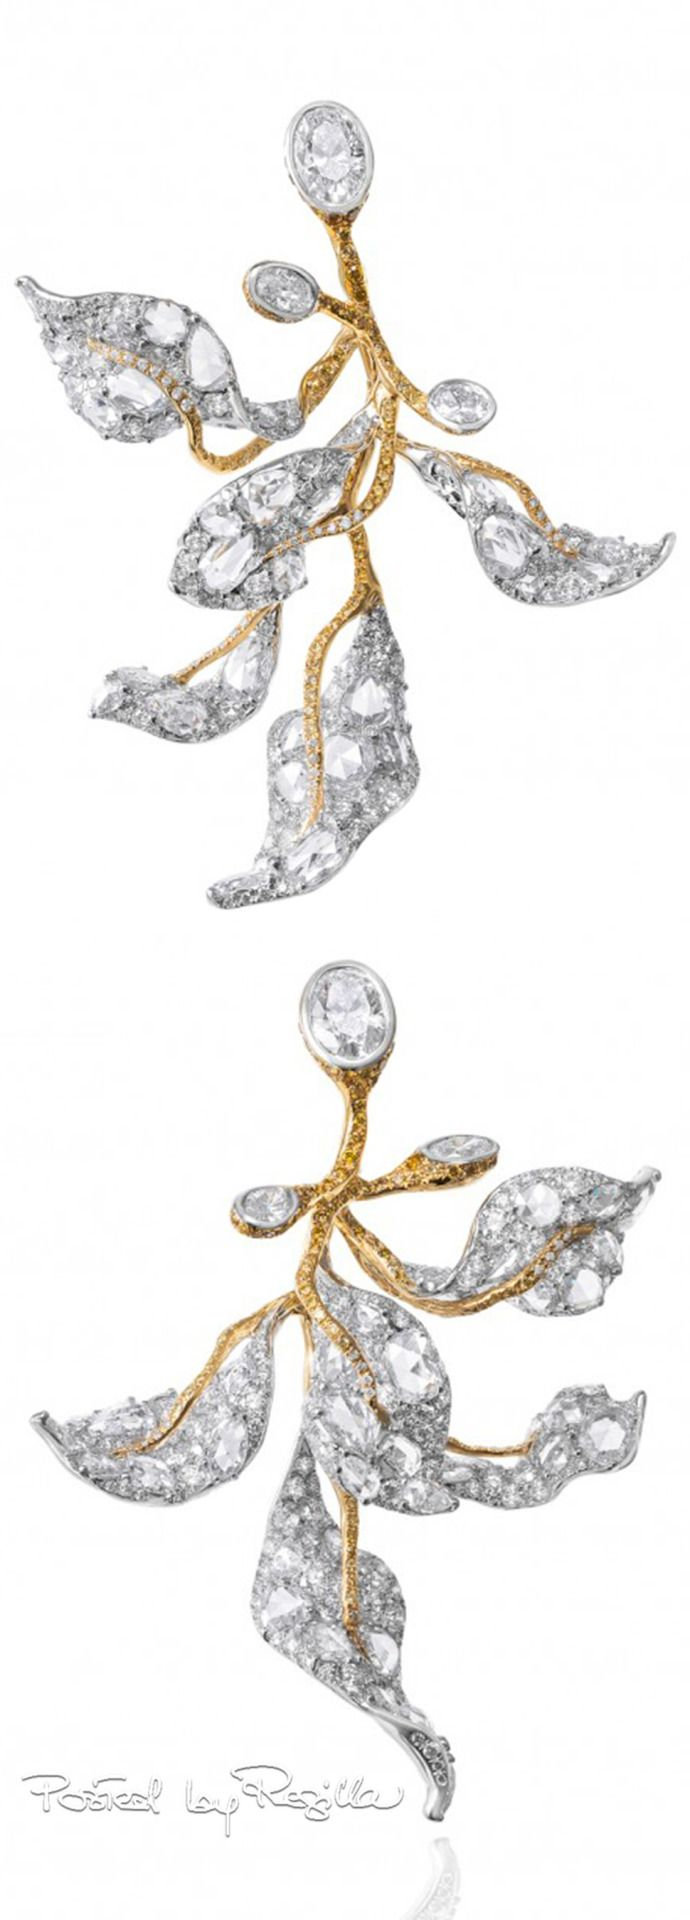 Regilla ⚜ Cindy Chao's 2016 Four Seasons Collection